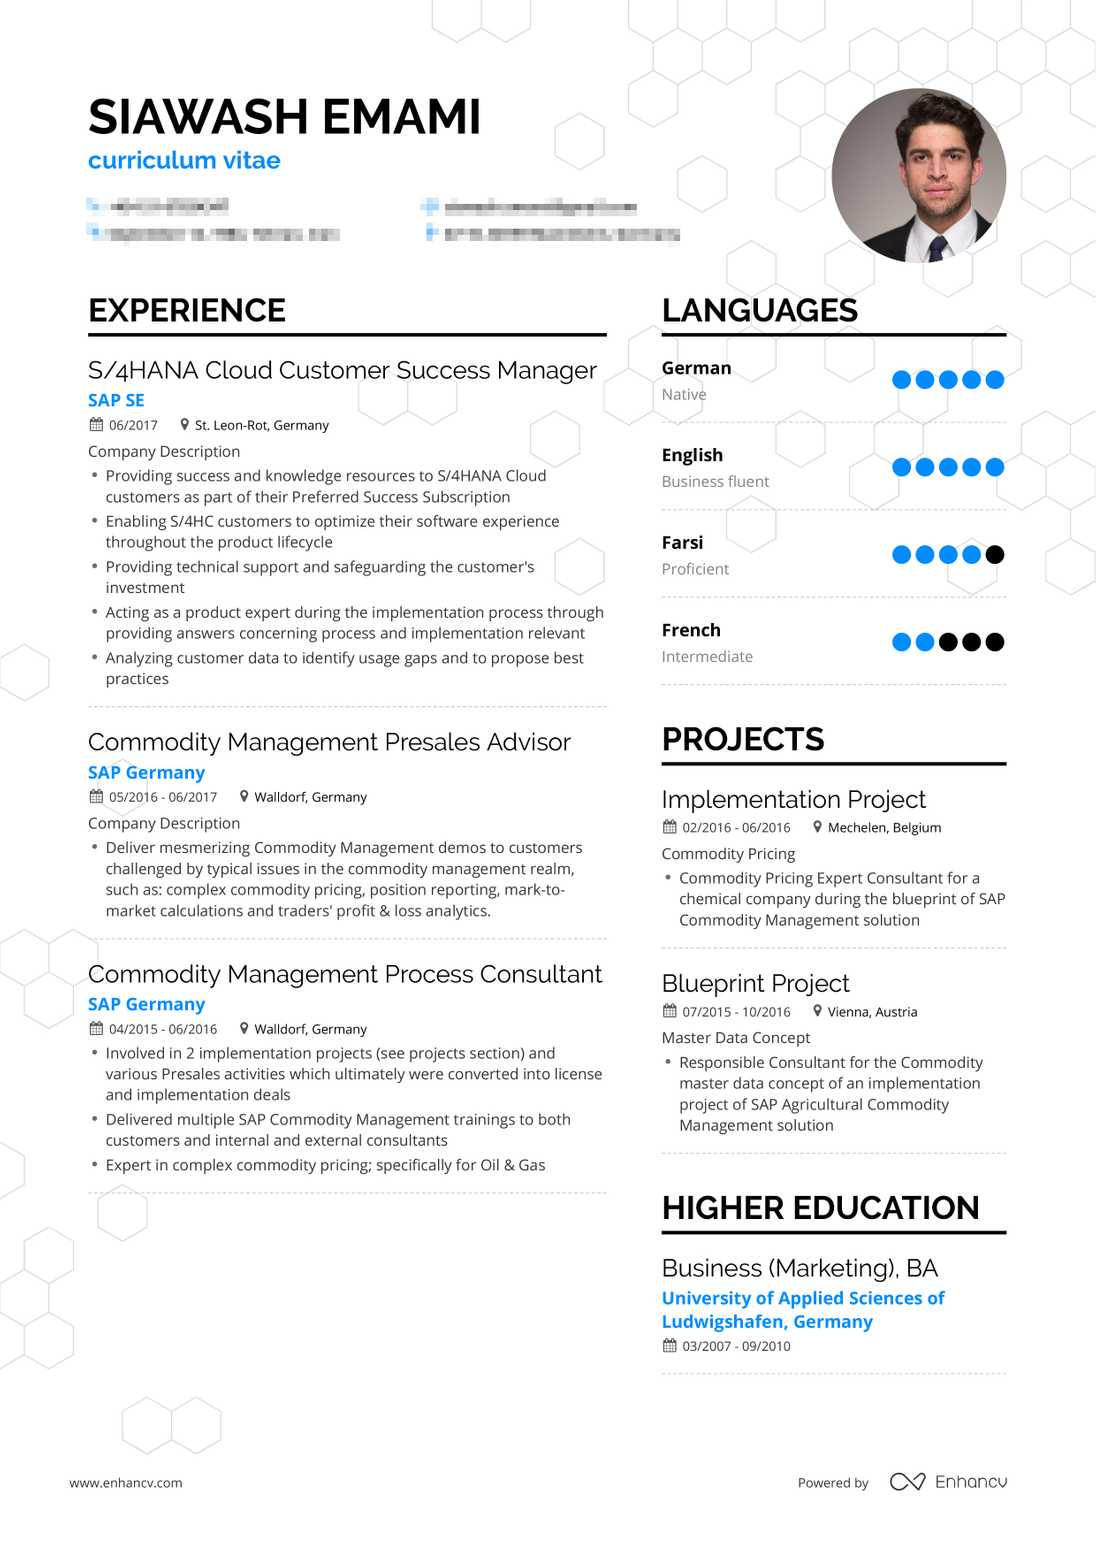 Real Customer Support Resume Example | Enhancv